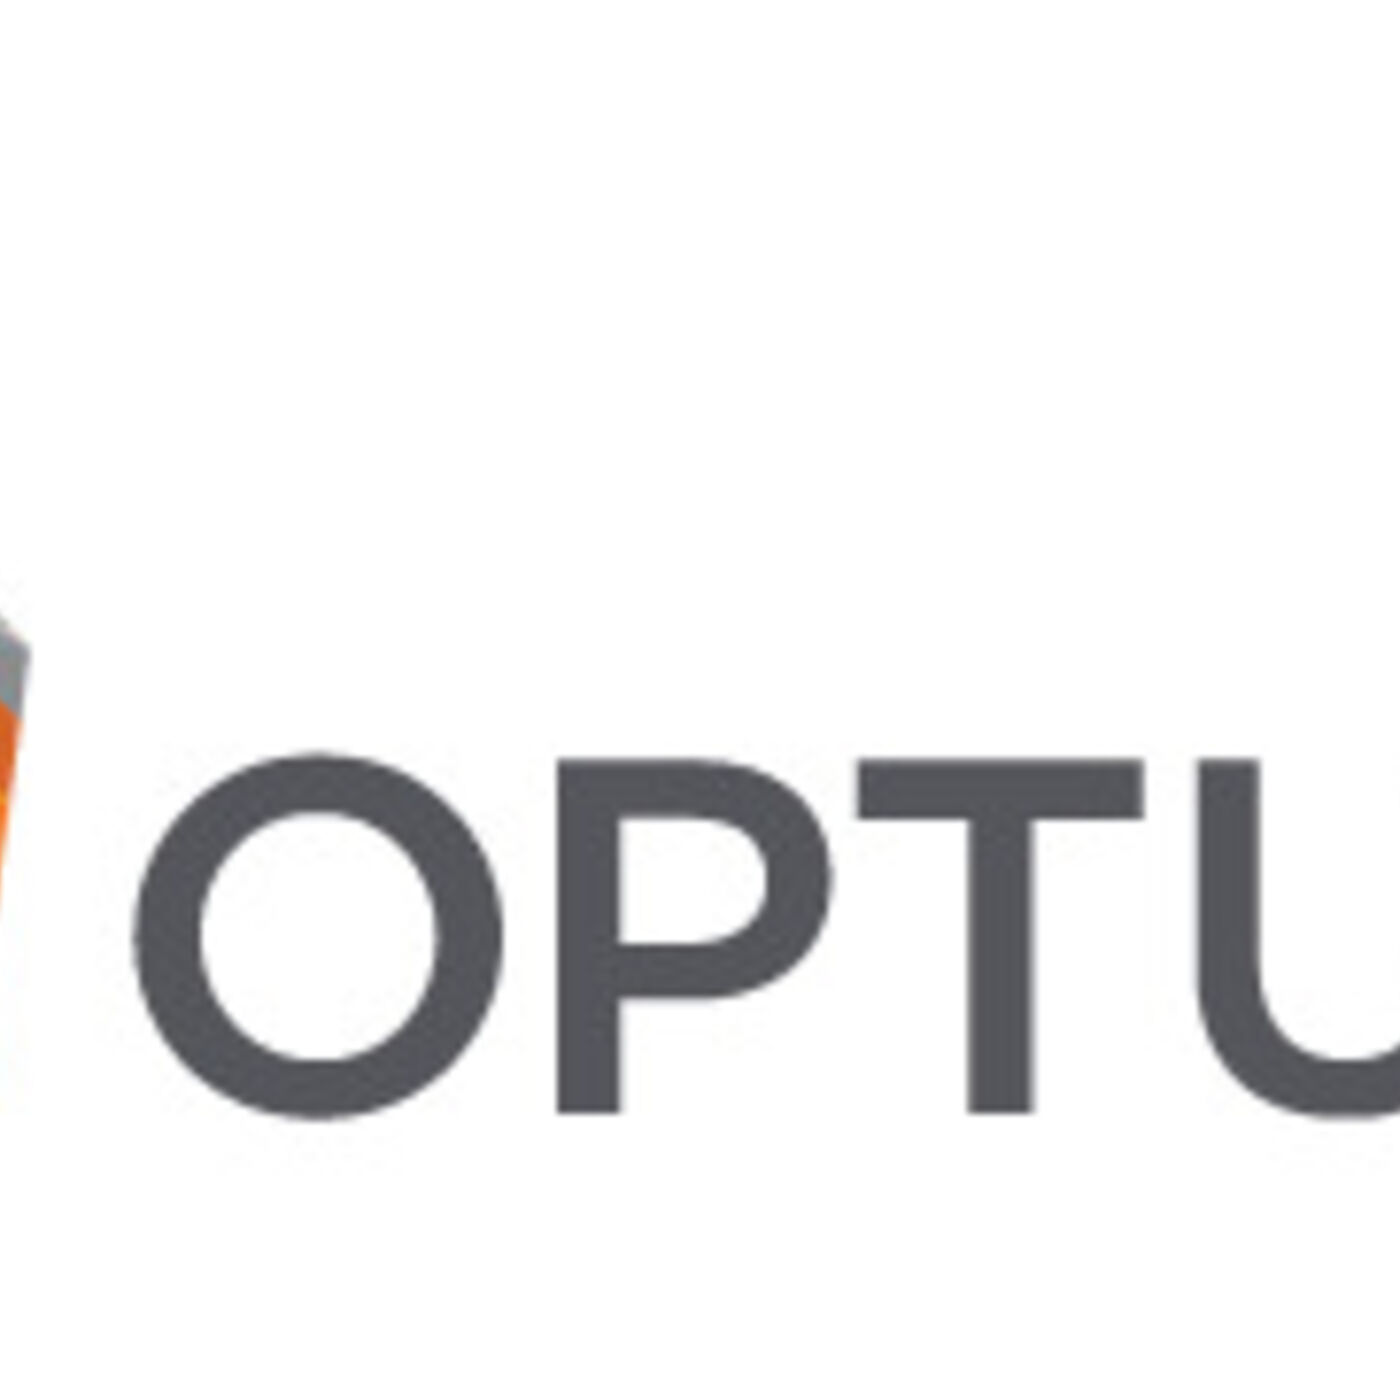 Optum Presents: Learn how enterprise IT strategies can enable modernizationfor improved care outcomes and enhanced provider and patient experiences